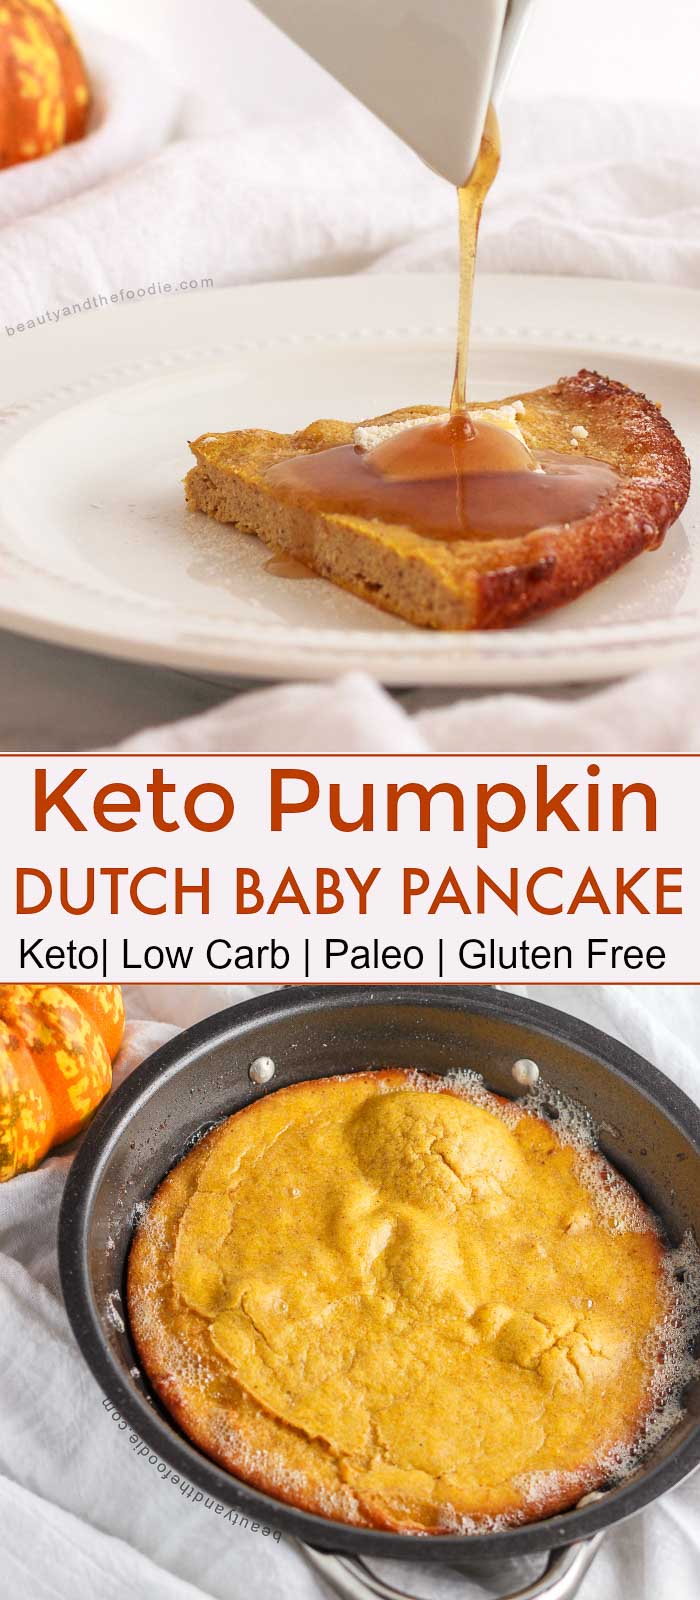 Keto Pumpkin Dutch Baby Pancake